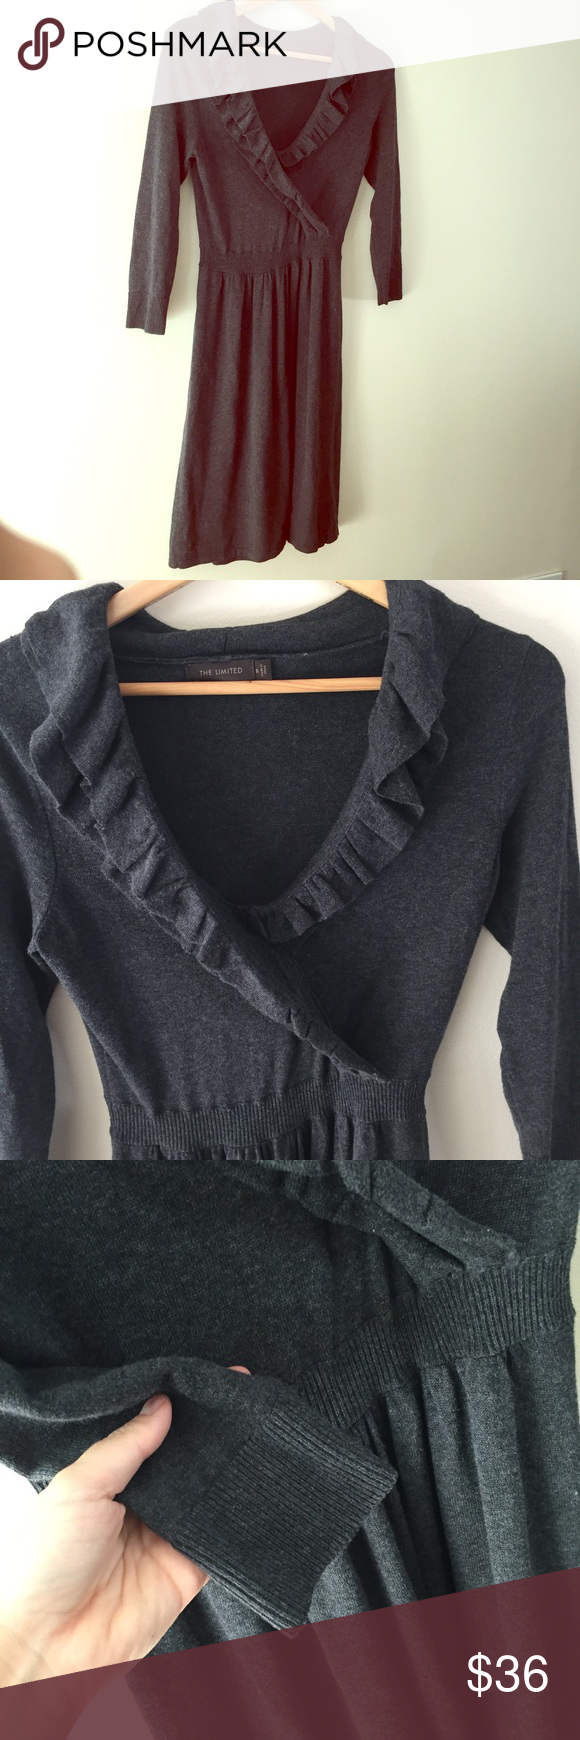 The limited long sleeve knit dress wrap charcoal ruffle dress and